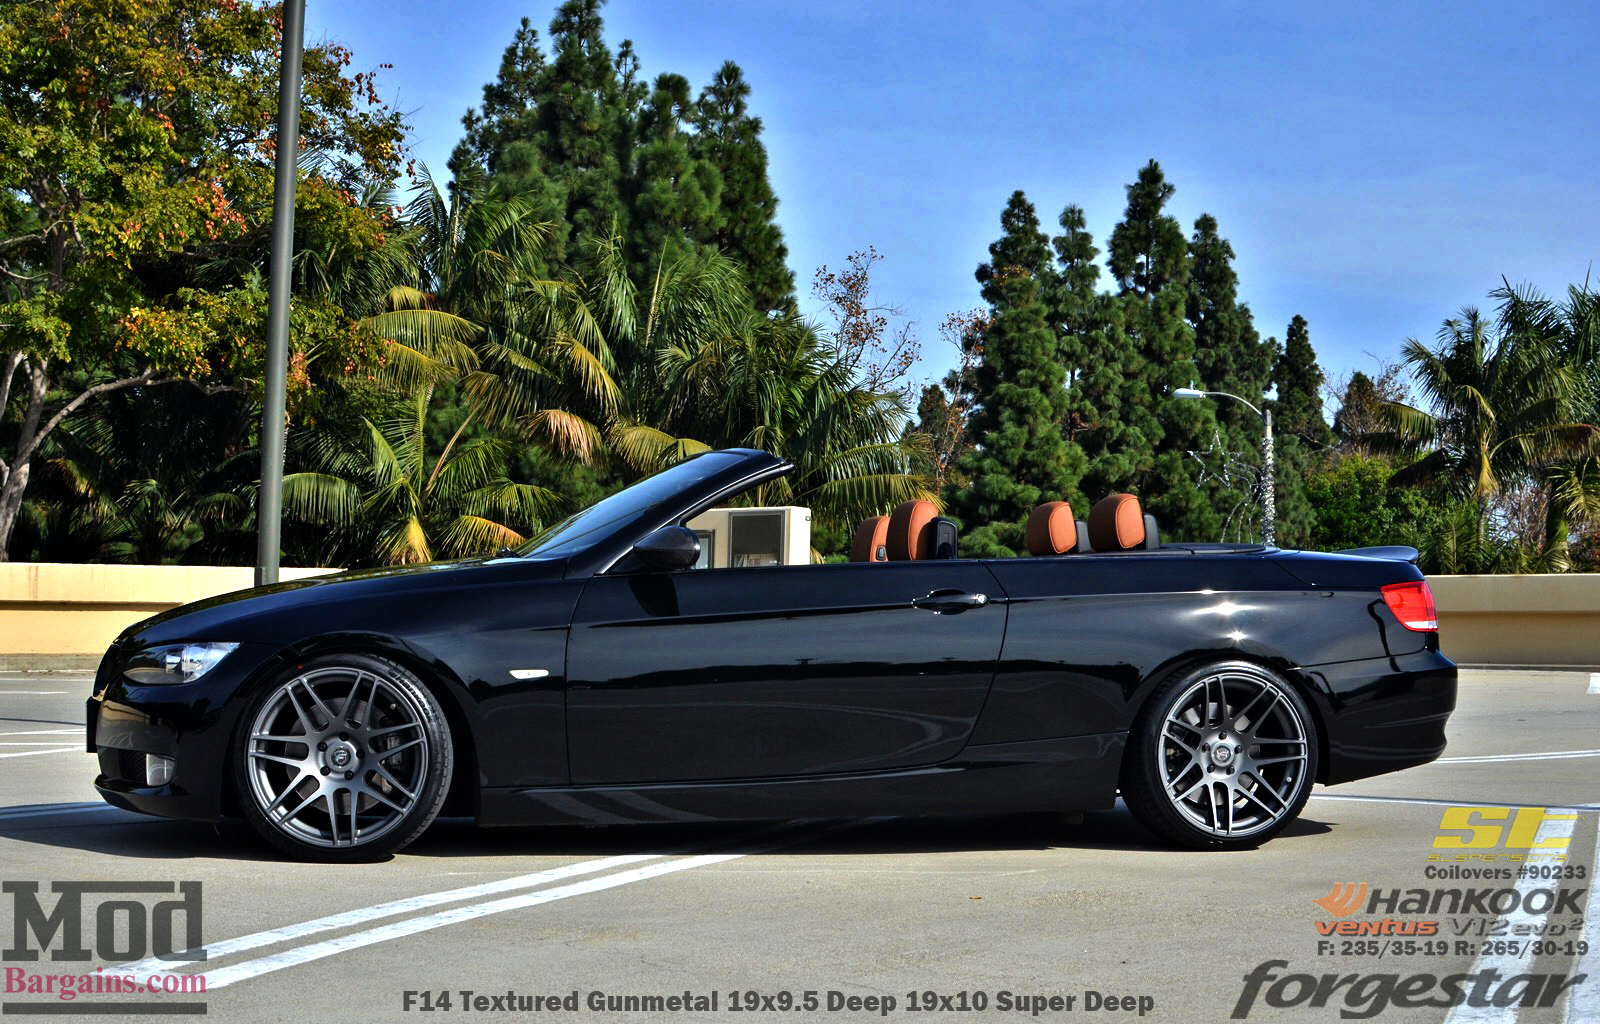 Black BMW E93 Cabrio on ST Coilovers with Forgestar F14 Wheels 19x9.5 19x10 in Textured Gunmetal